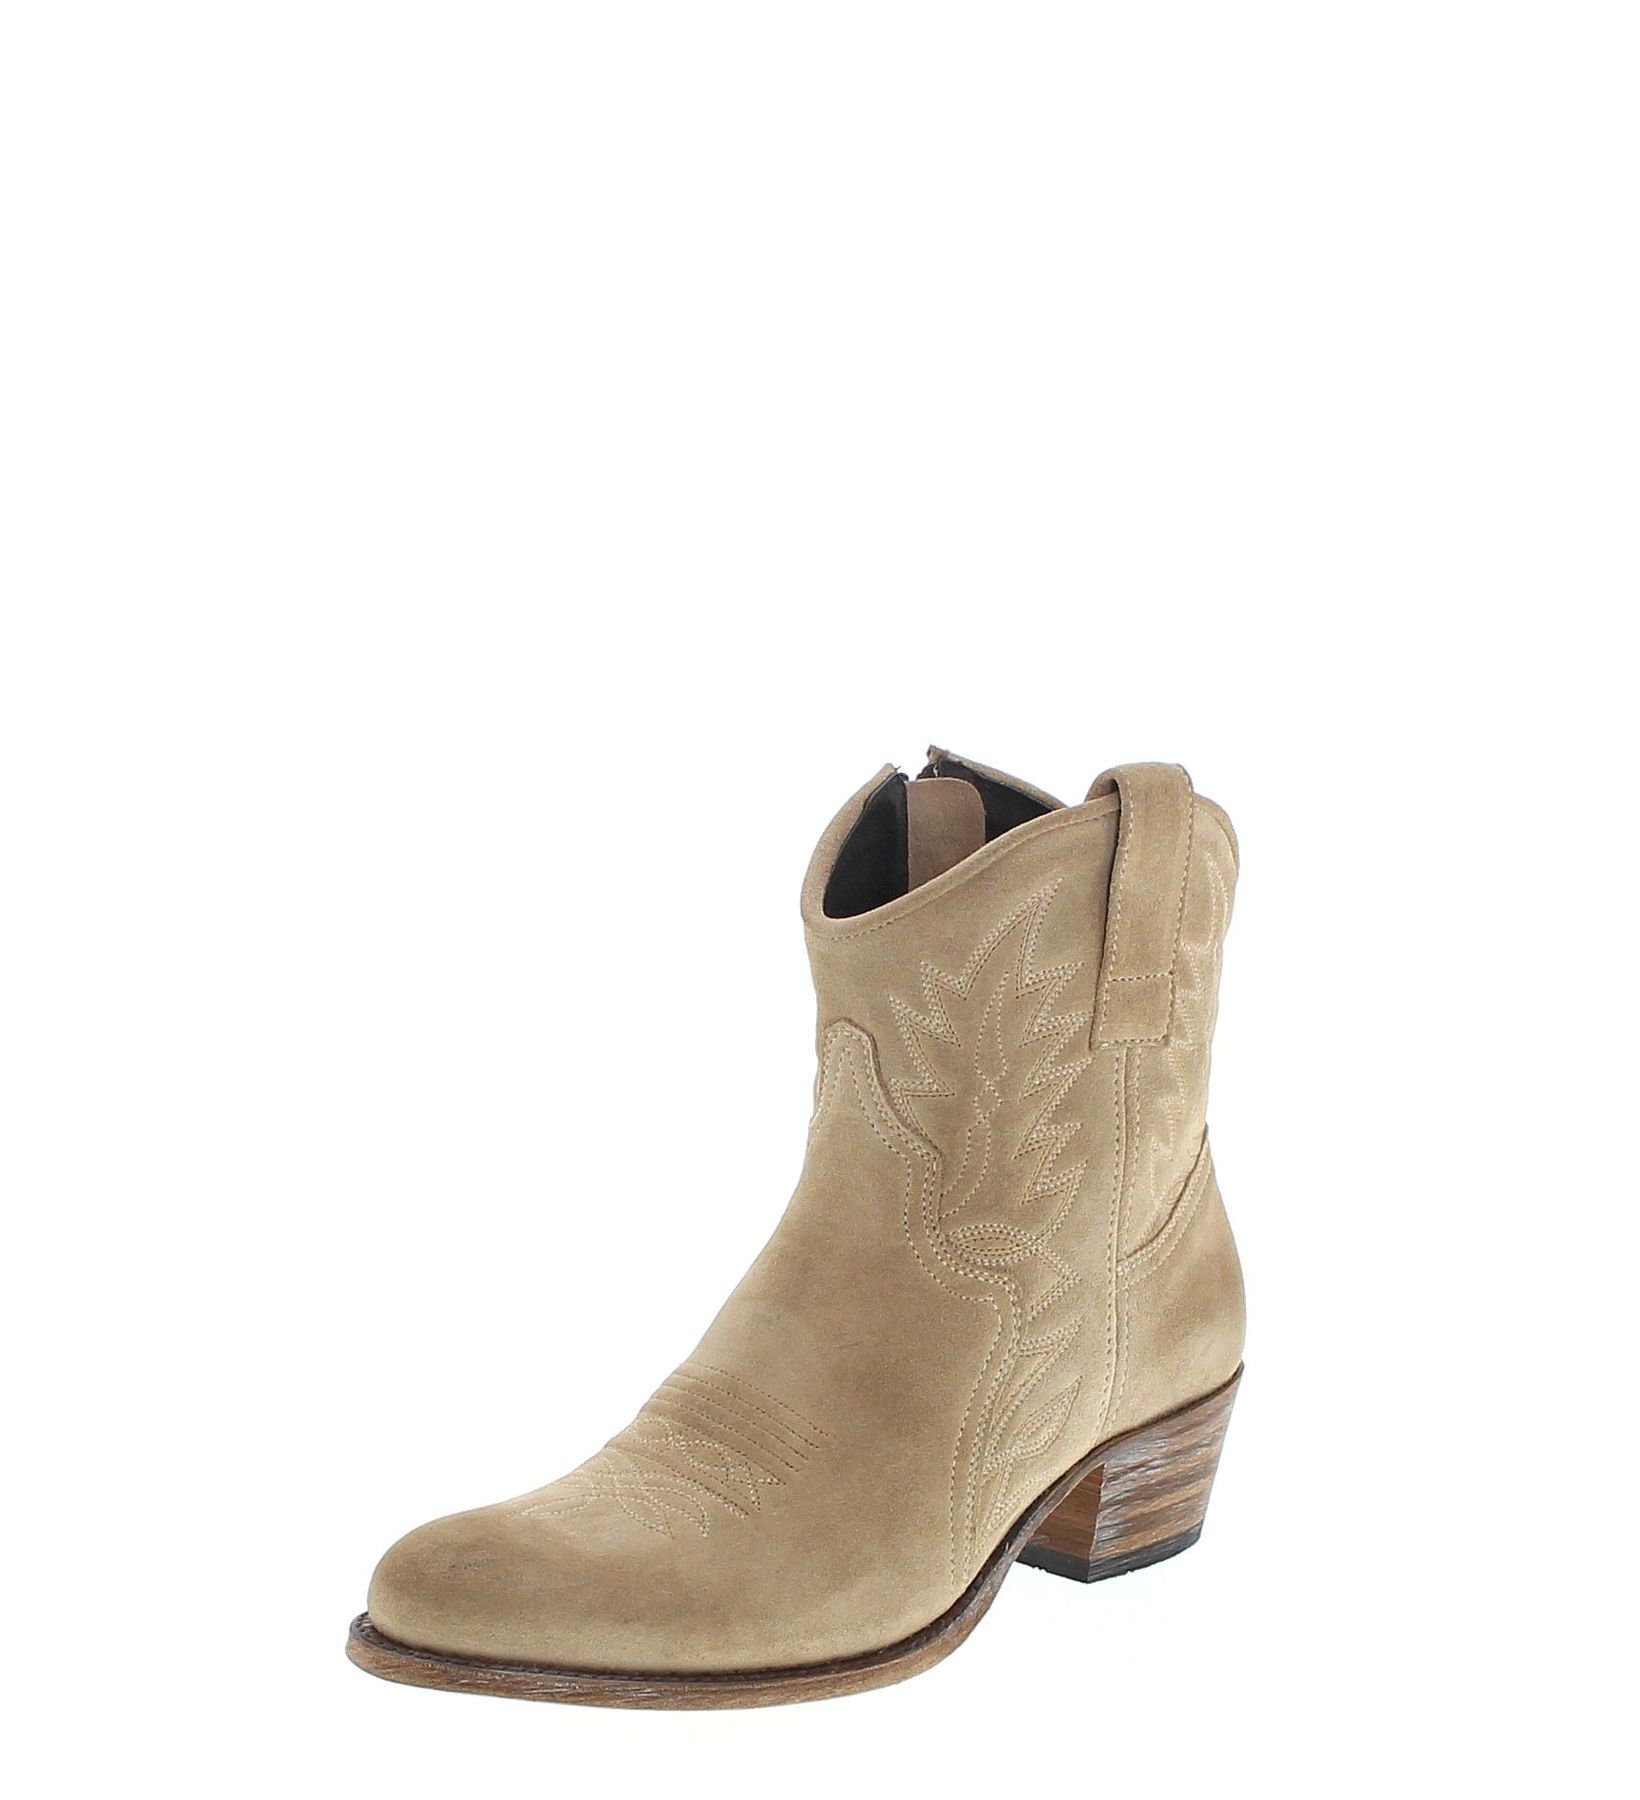 sendra boots 10163 firence western ankle boot beige fashion boots. Black Bedroom Furniture Sets. Home Design Ideas